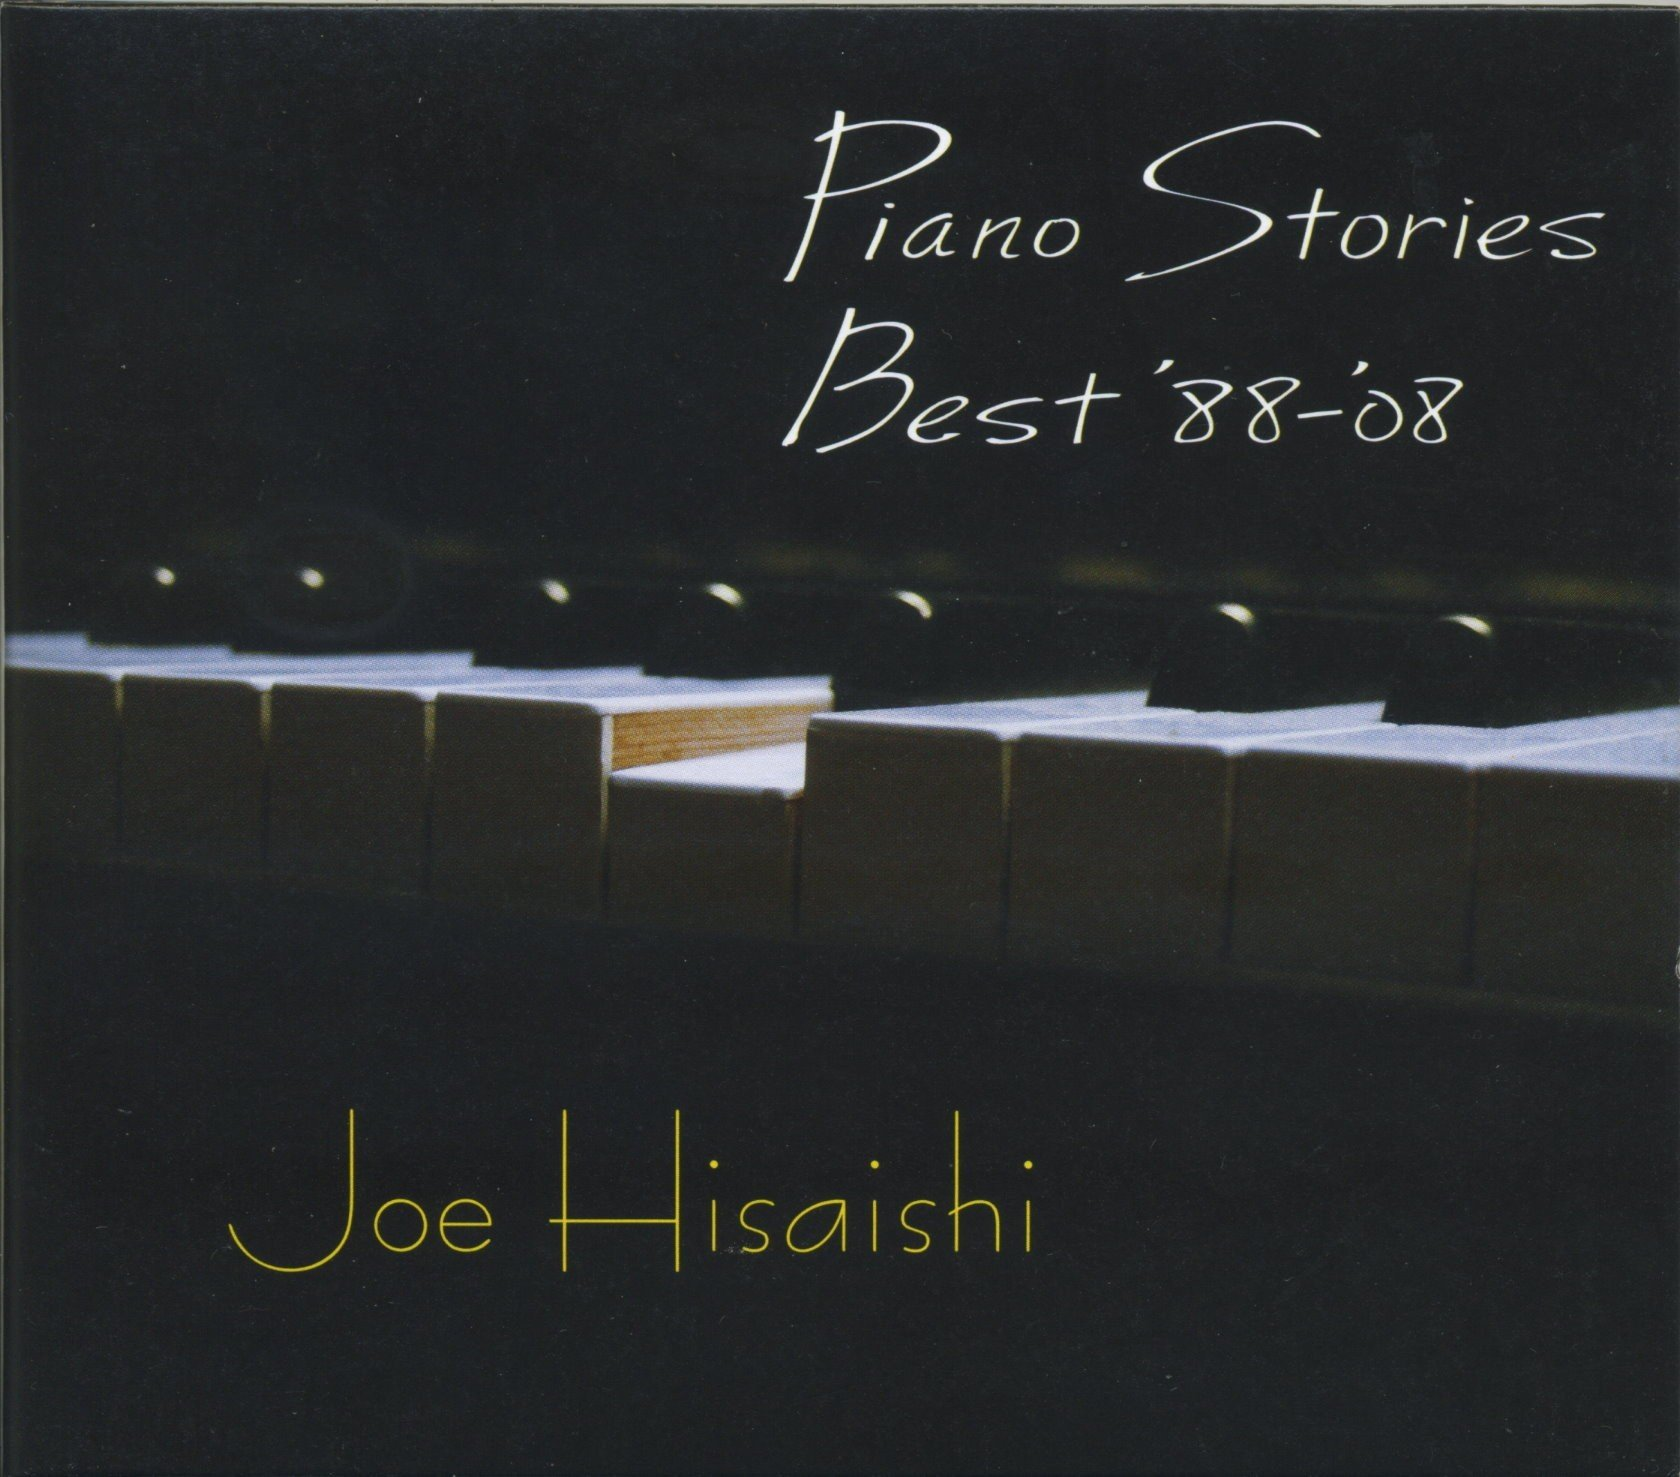 久石譲 (Joe Hisaishi) – Piano Stories Best '88-'08 [FLAC / 24bit Lossless / WEB] [2008.04.16]